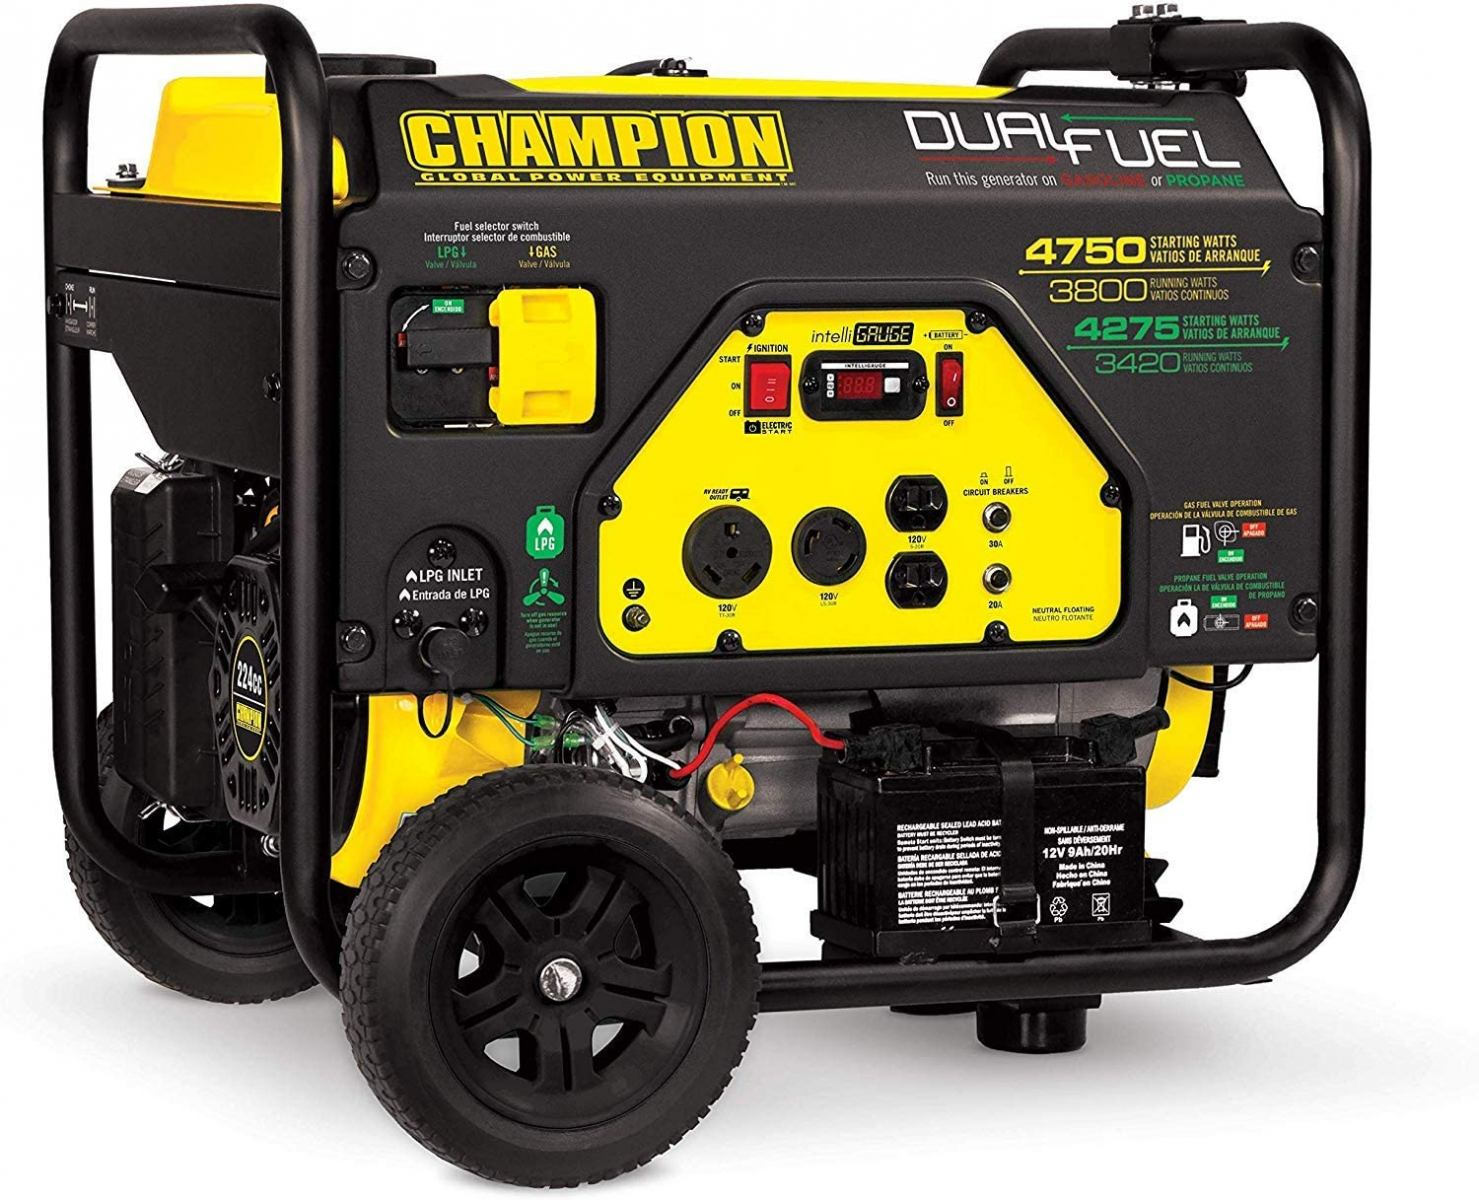 Best Generator Brands in 2020